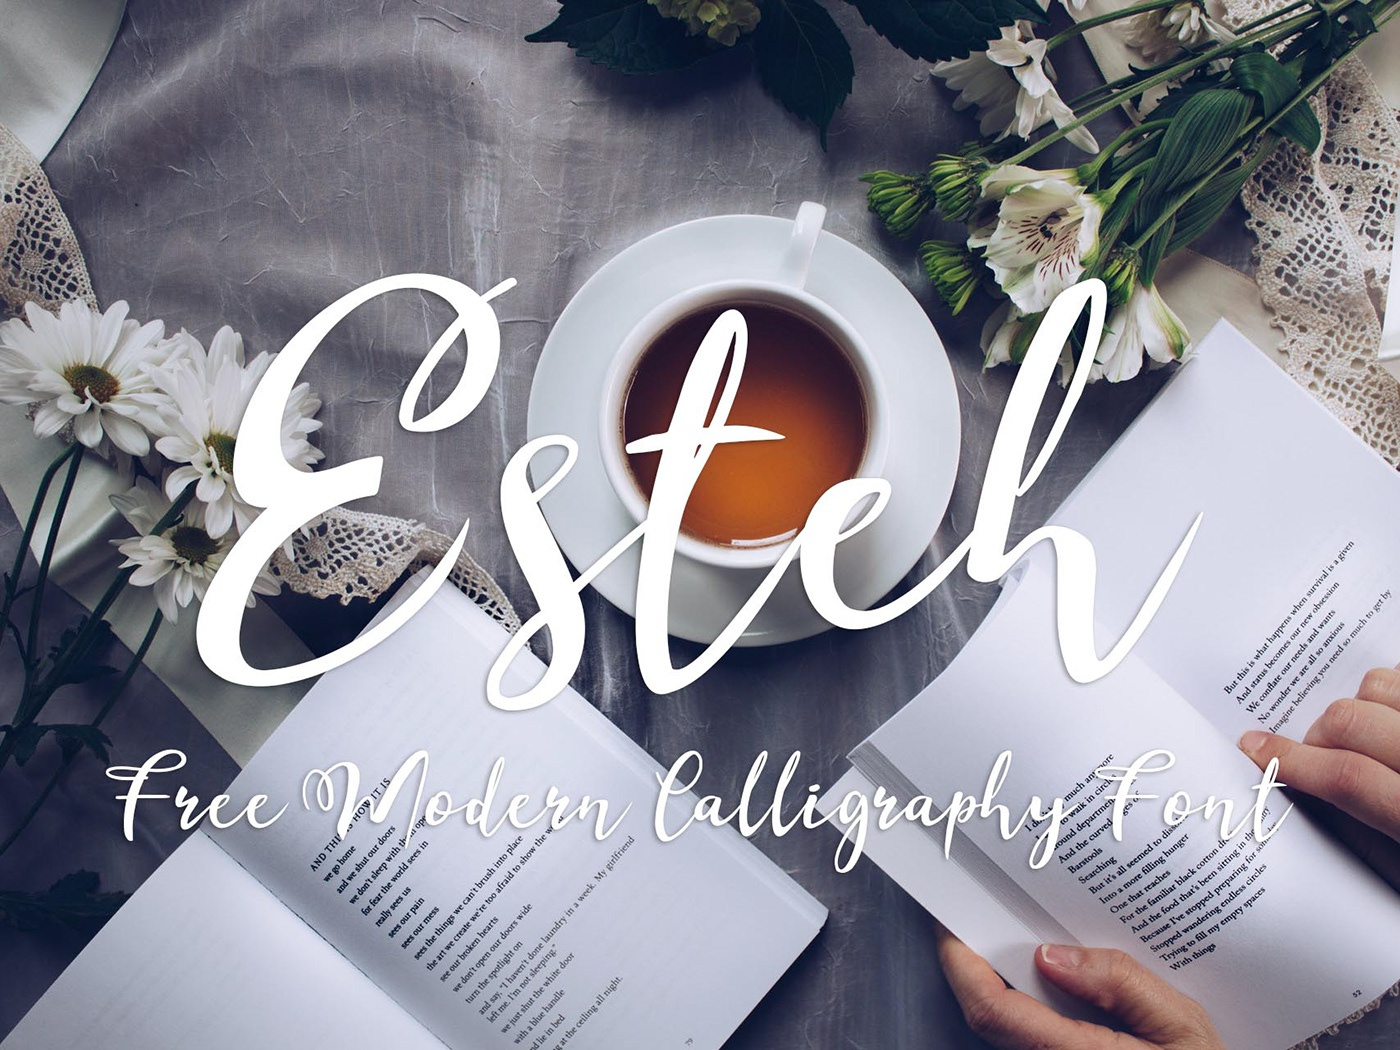 Esteh - Free Modern Calligraphy Font fashions greeting cards freebie freebies posters clothes clothing logos logo letters design business cards quotes invitations typography typeface branding free typeface free font font